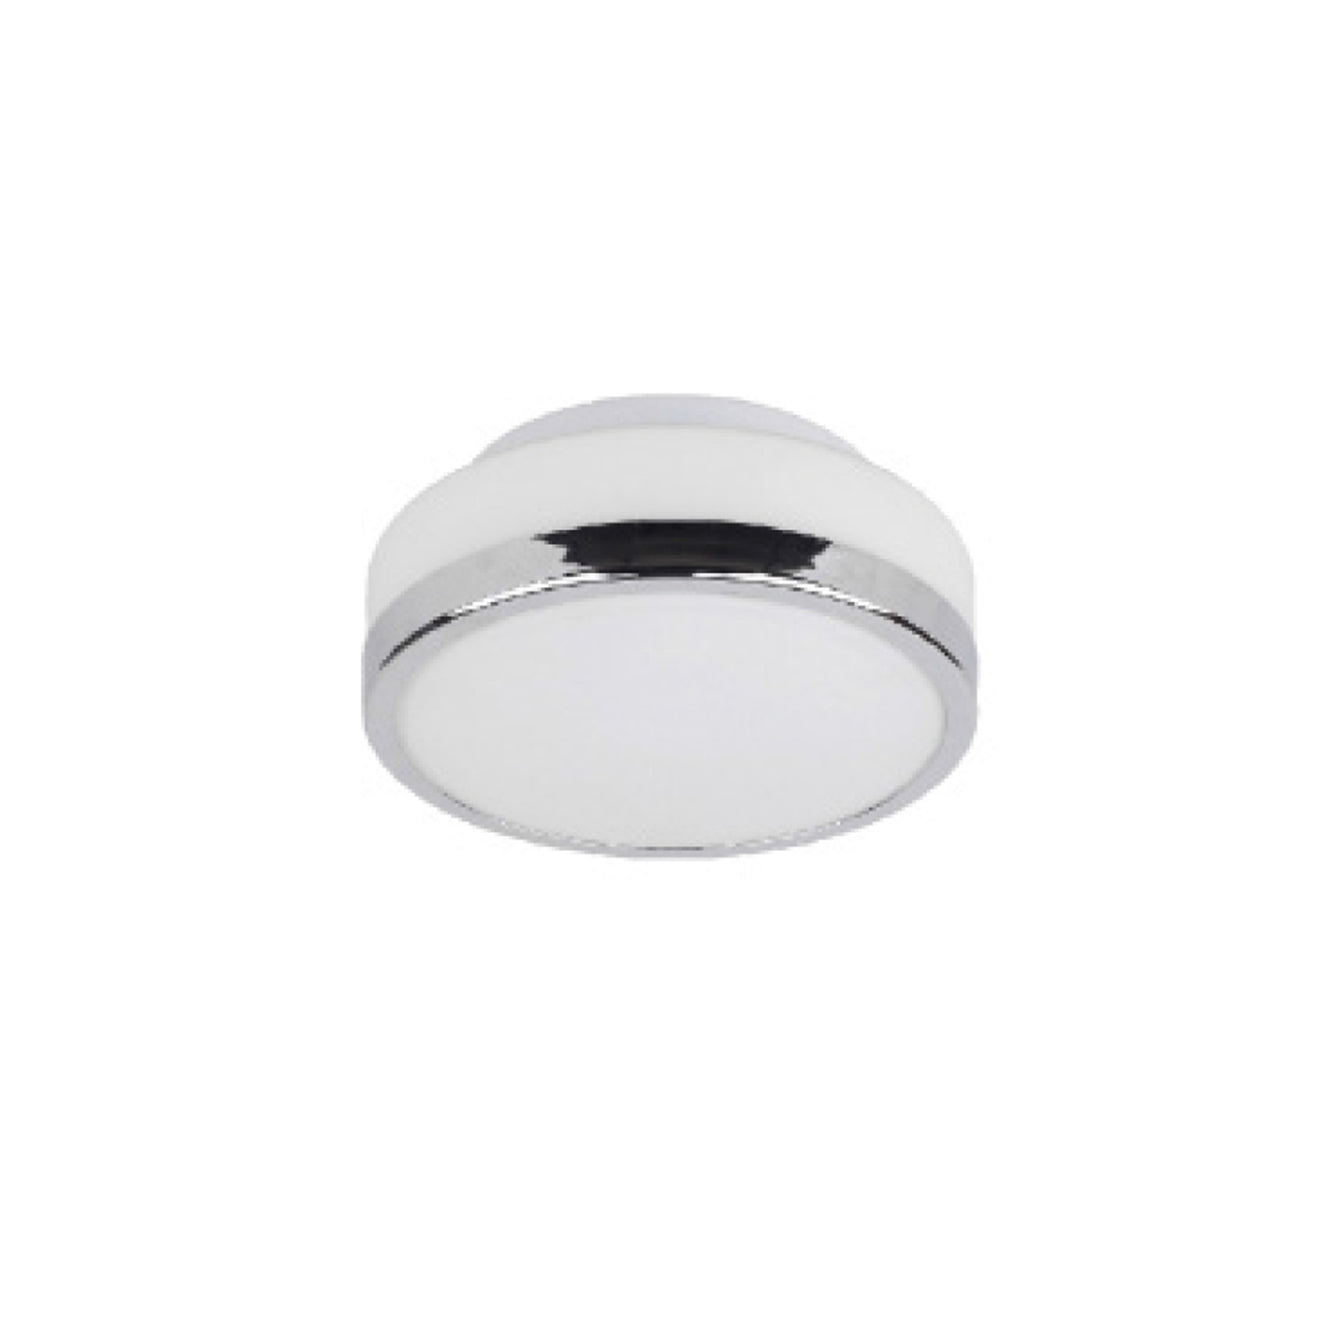 Latimer Small and Large Flush Fitting LED Light - Buy It Better Small